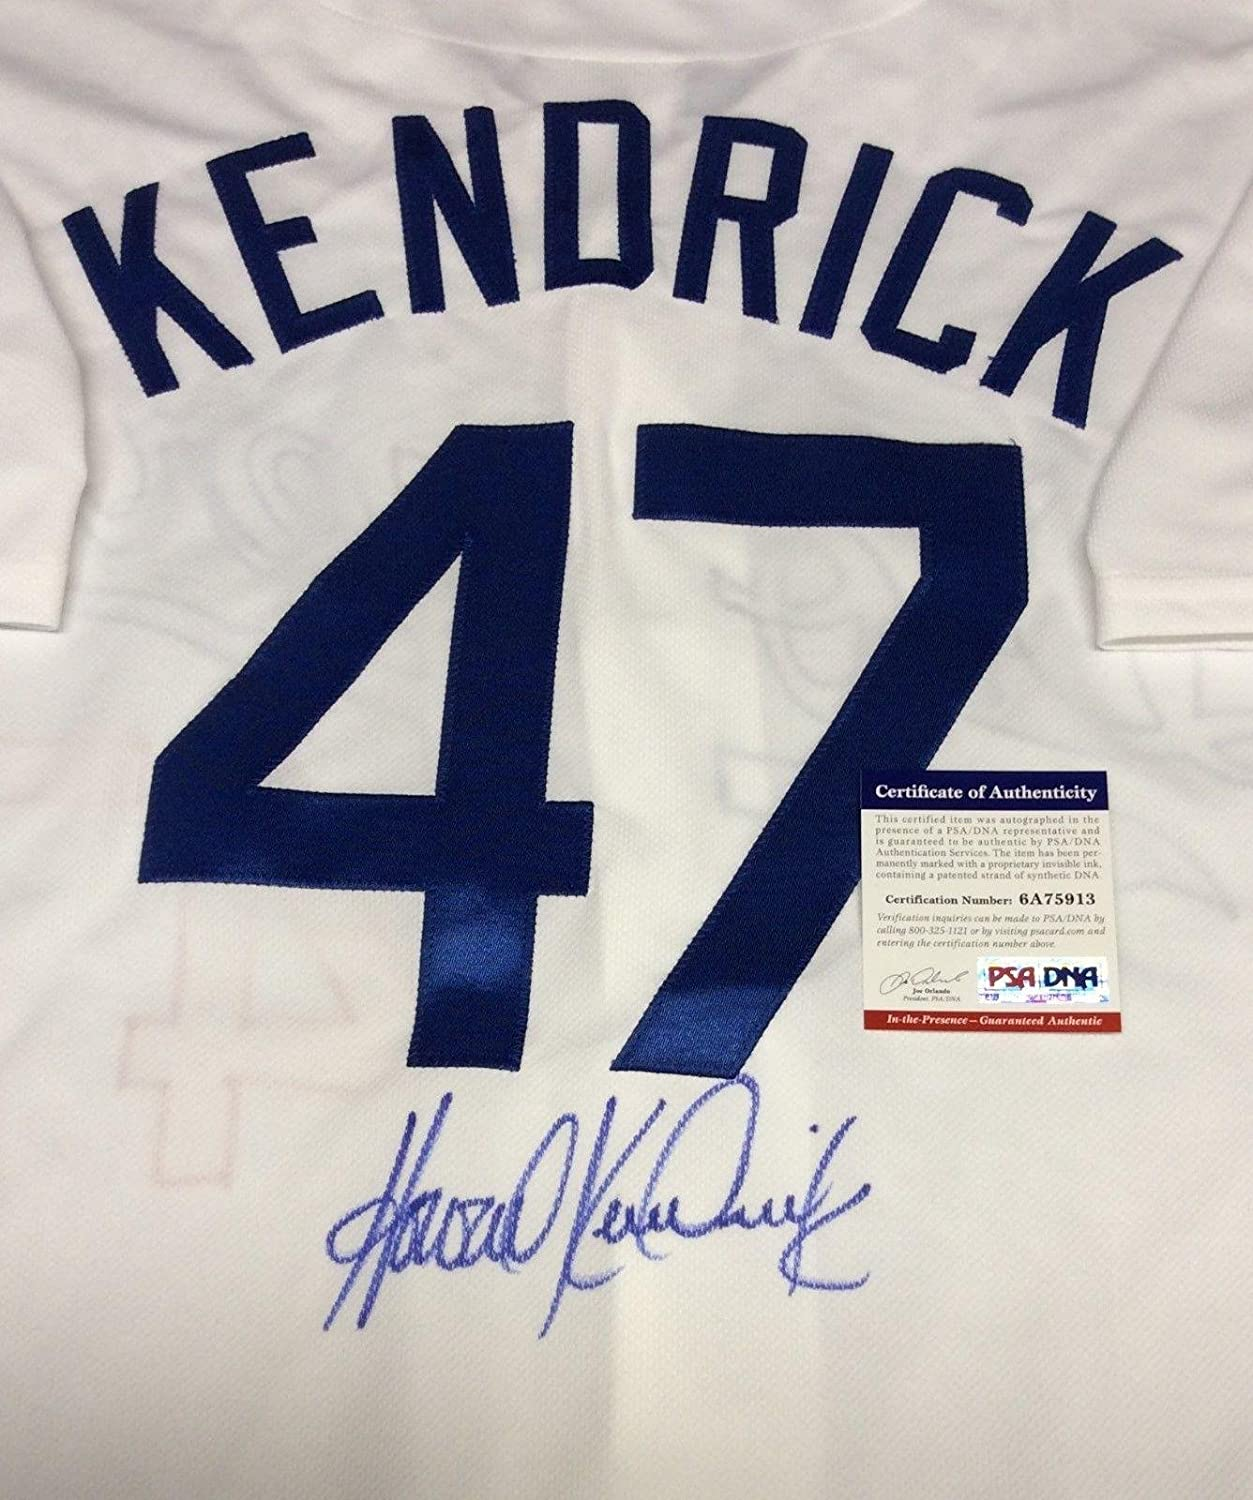 b178855e0 Amazon.com  Howie Kendrick Autographed Jersey - PSA DNA   6A75913 -  Autographed MLB Jerseys  Sports Collectibles